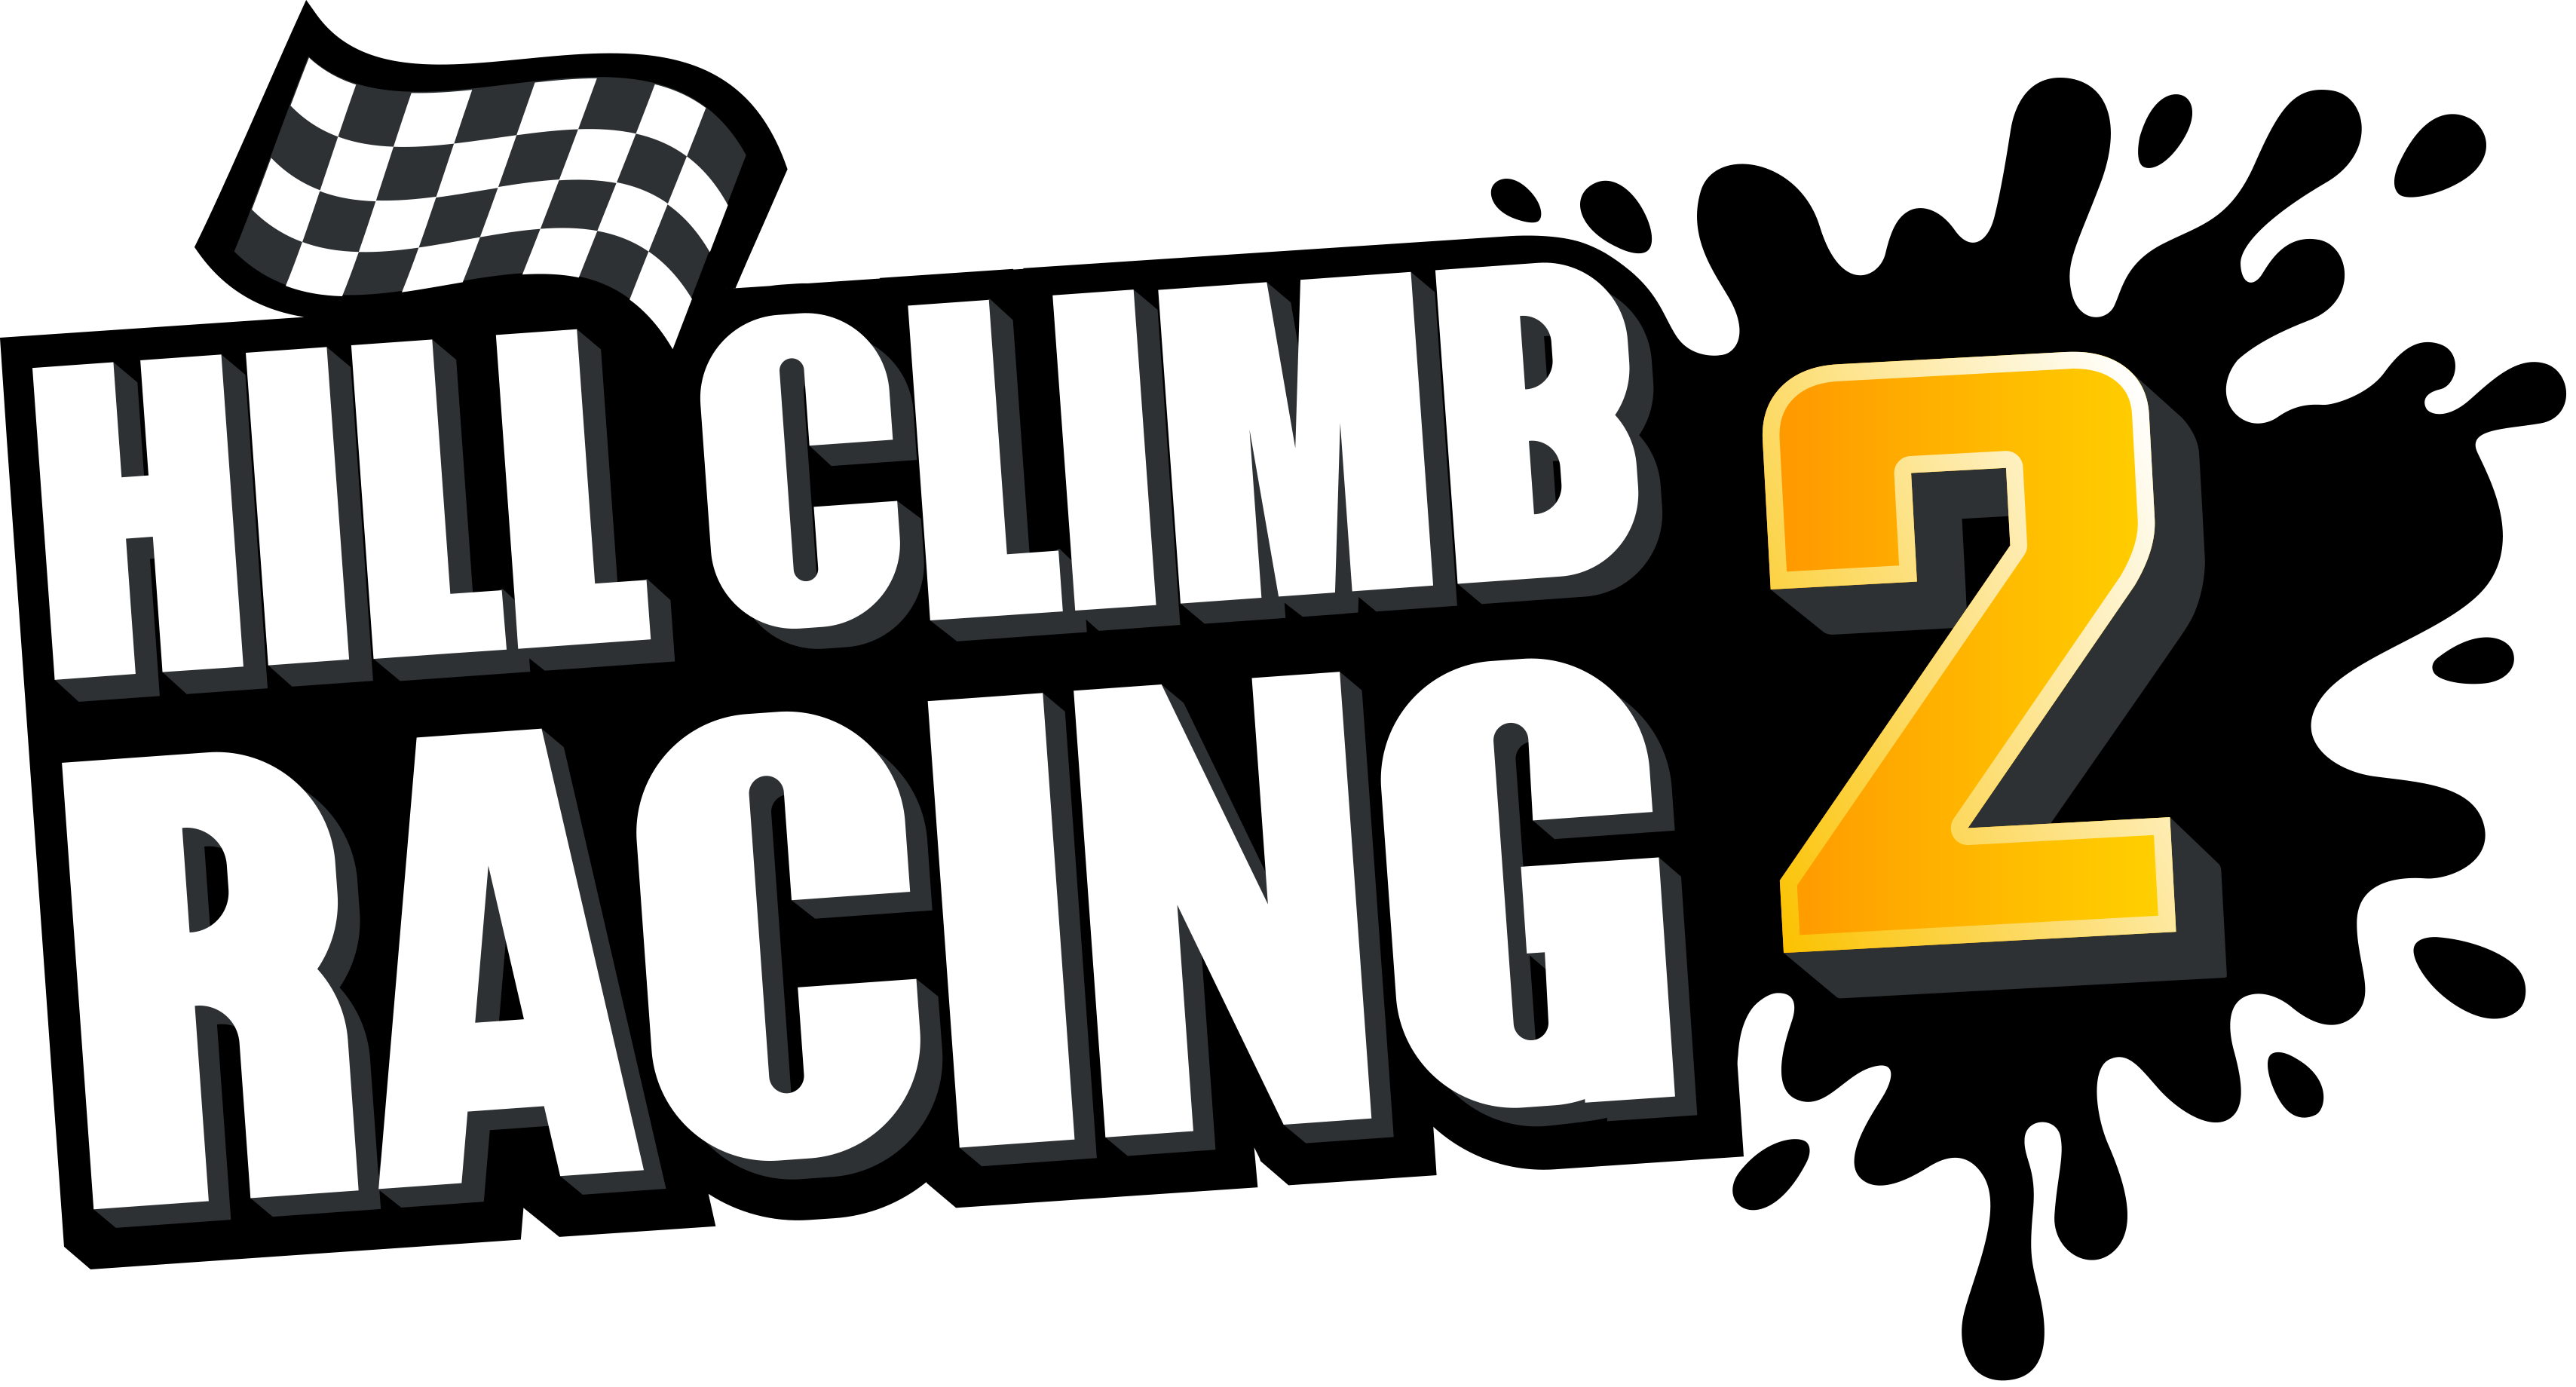 Race clipart won race. Hill climb racing fingersoft